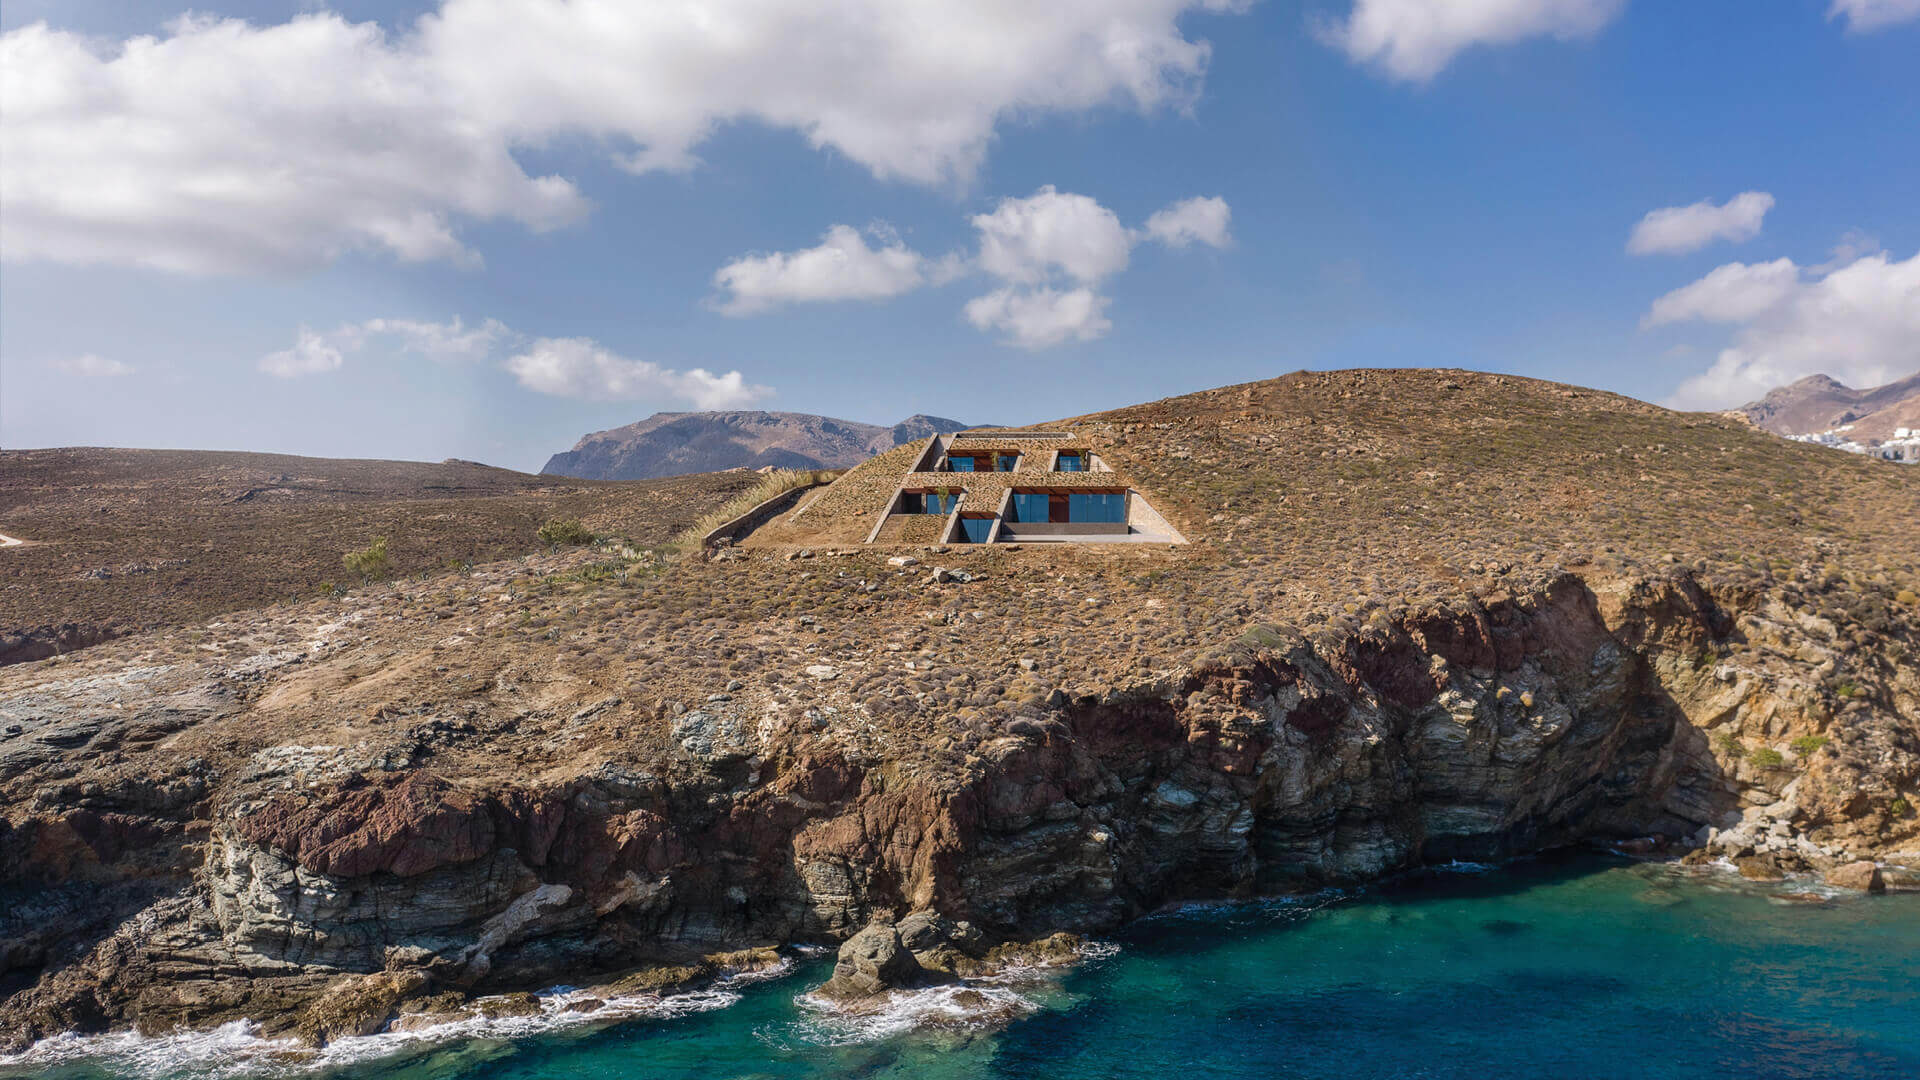 nCaved house designed by Mold Architects sits embedded on a rocky slope in a Greek island | nCaved House by Mold Architects | STIRworld